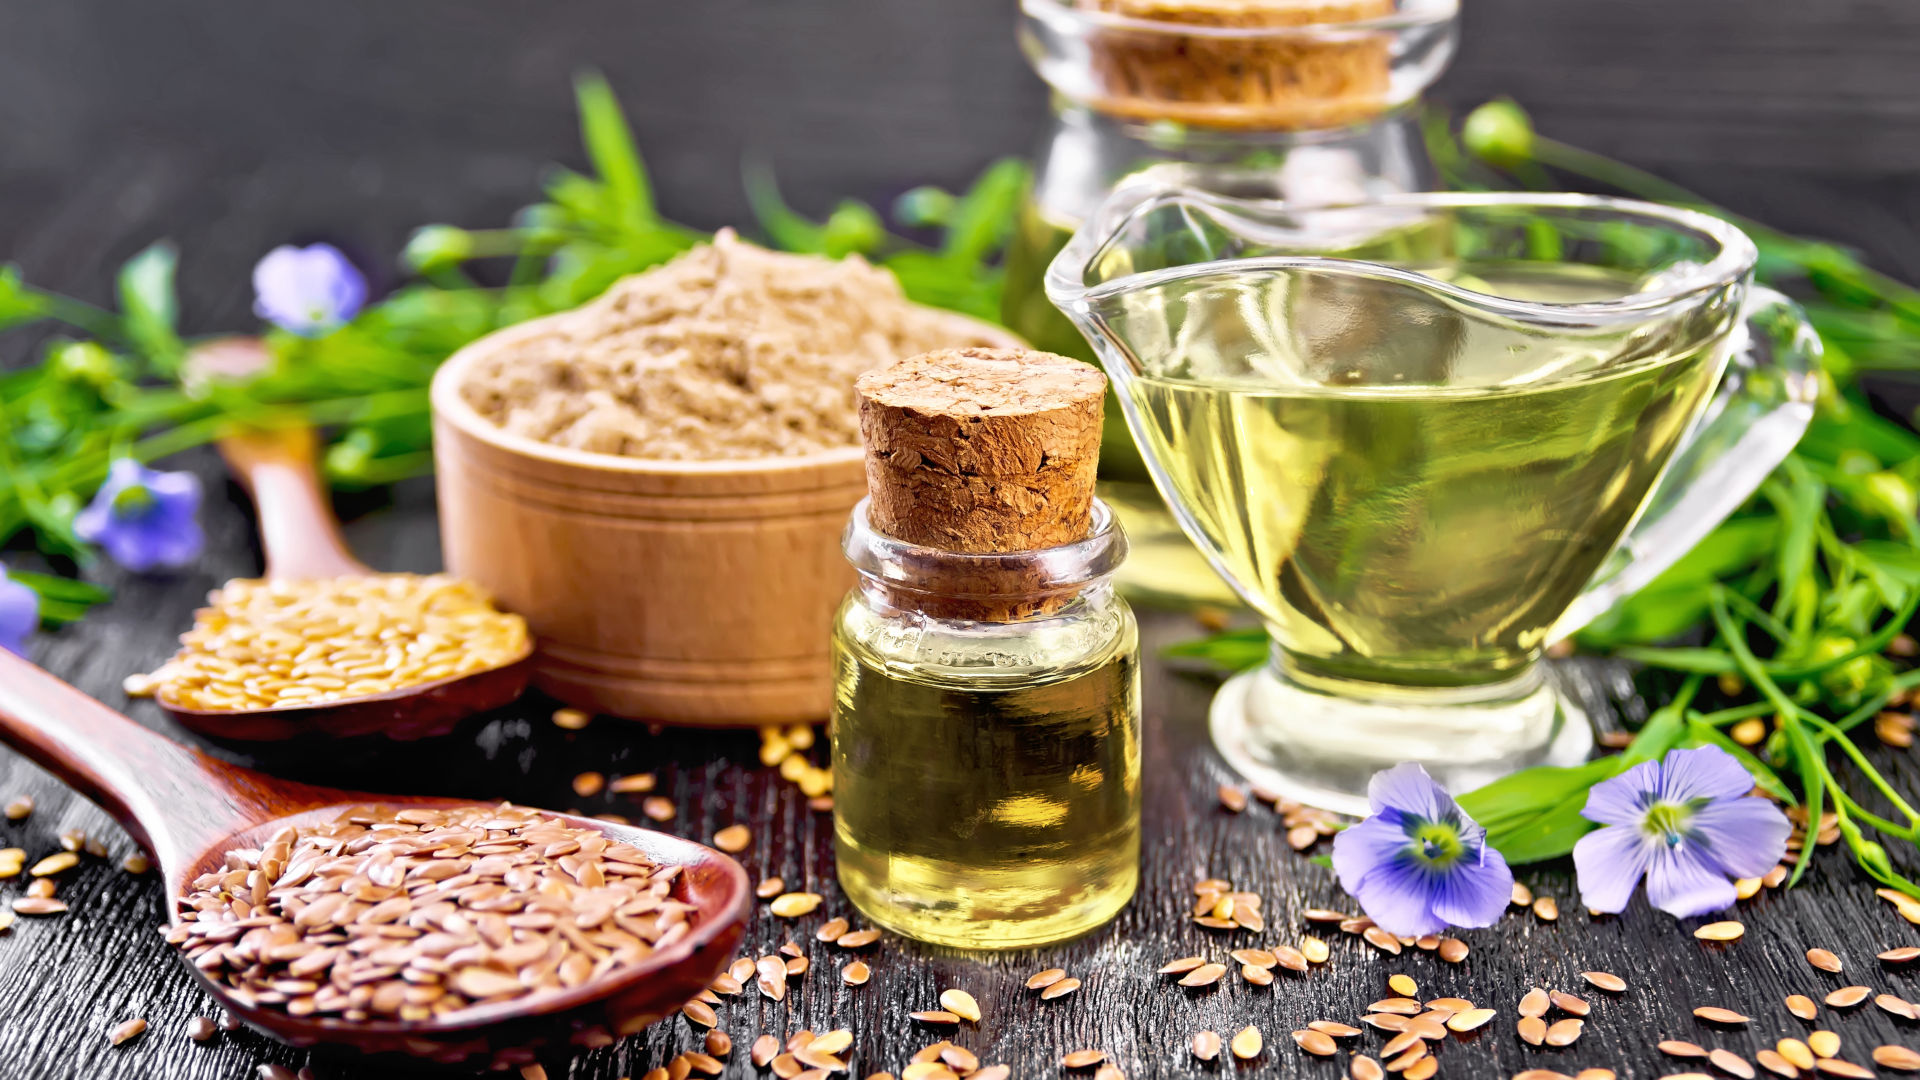 Linseed oil: an elixir of well-being